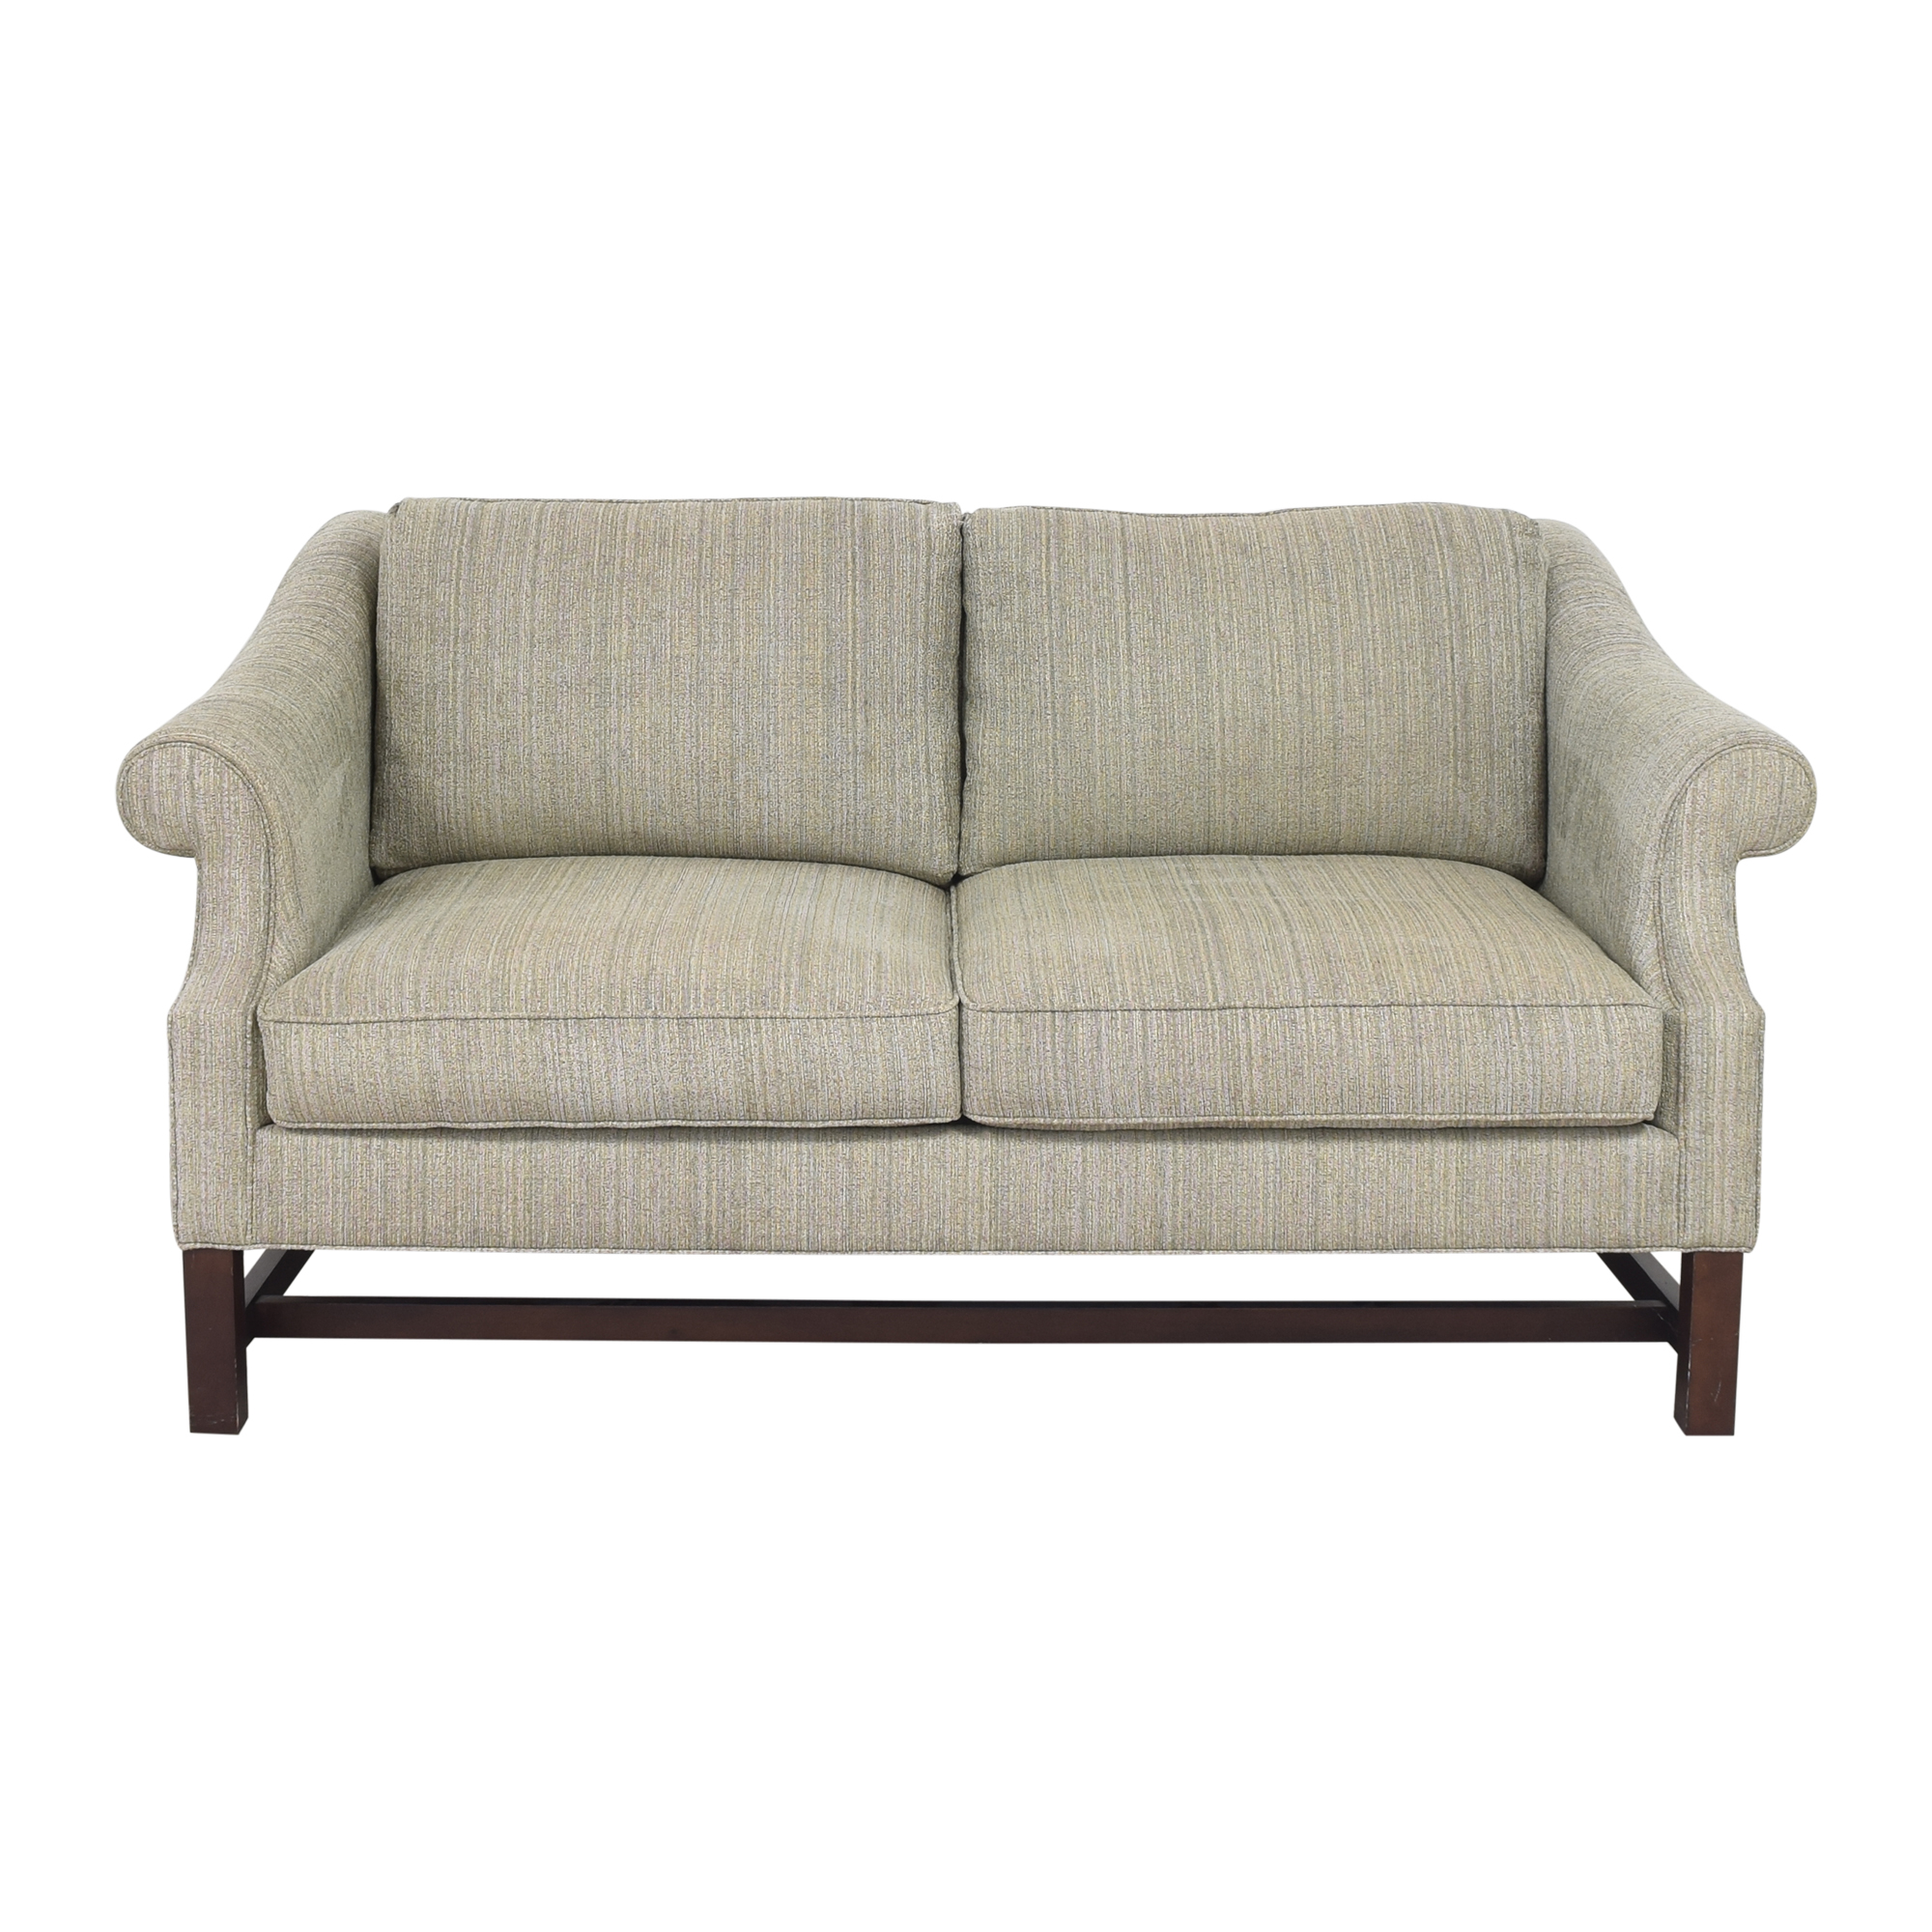 buy Bernhardt Martha Stewart Signature Collection Sofa Bernhardt Sofas